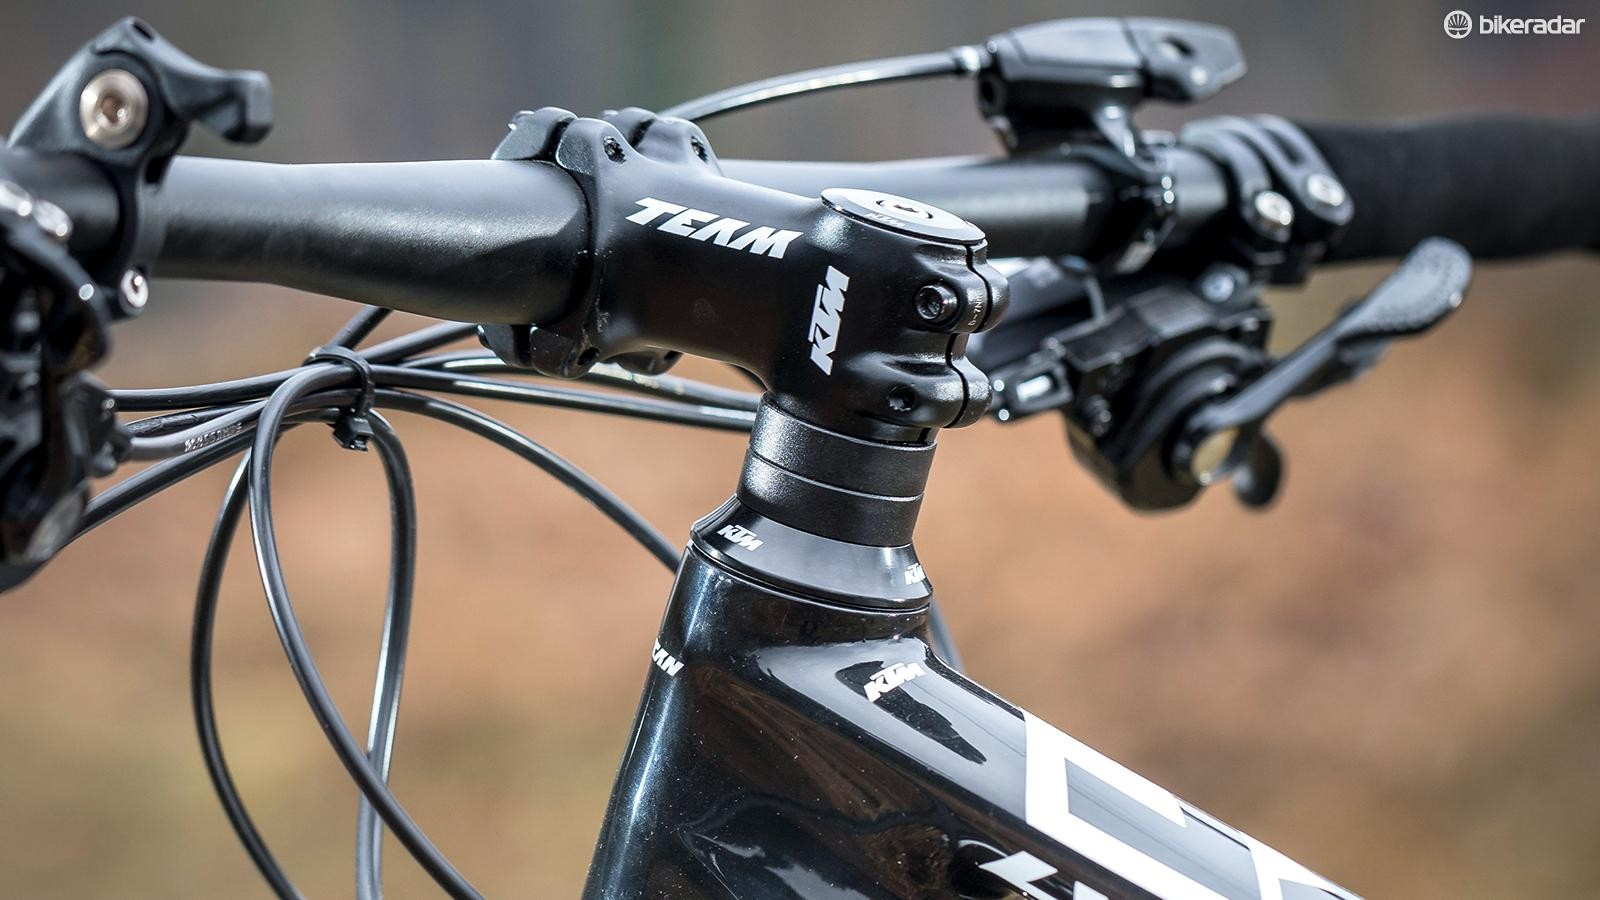 A look at the bike's 68.5-degree head angle